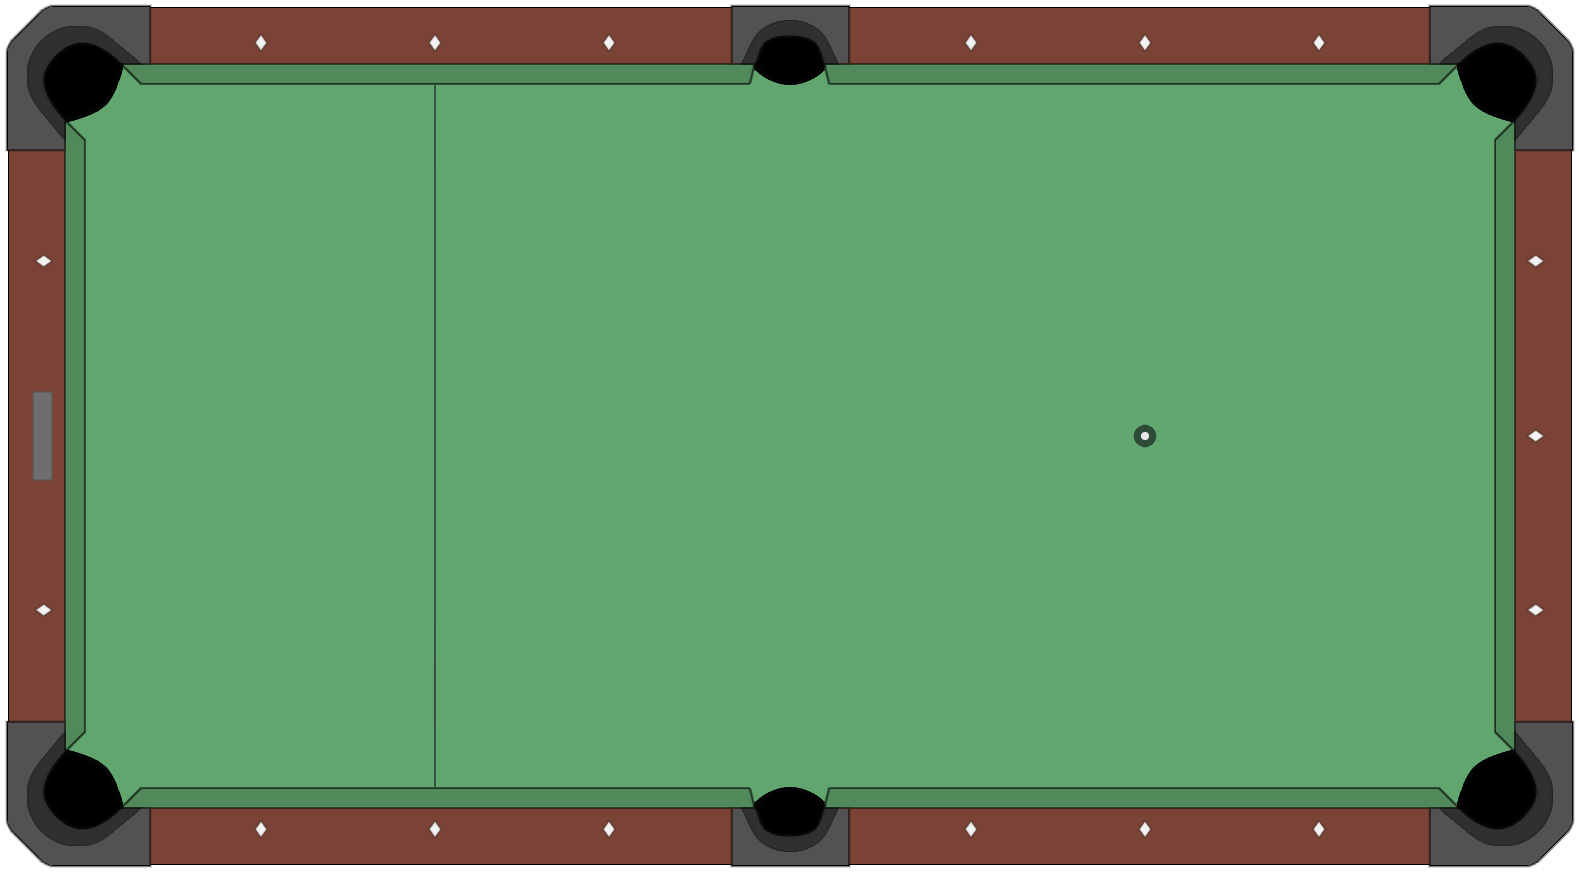 hight resolution of blank pool table diagram schema wiring diagram online pool table template blank pool table diagram